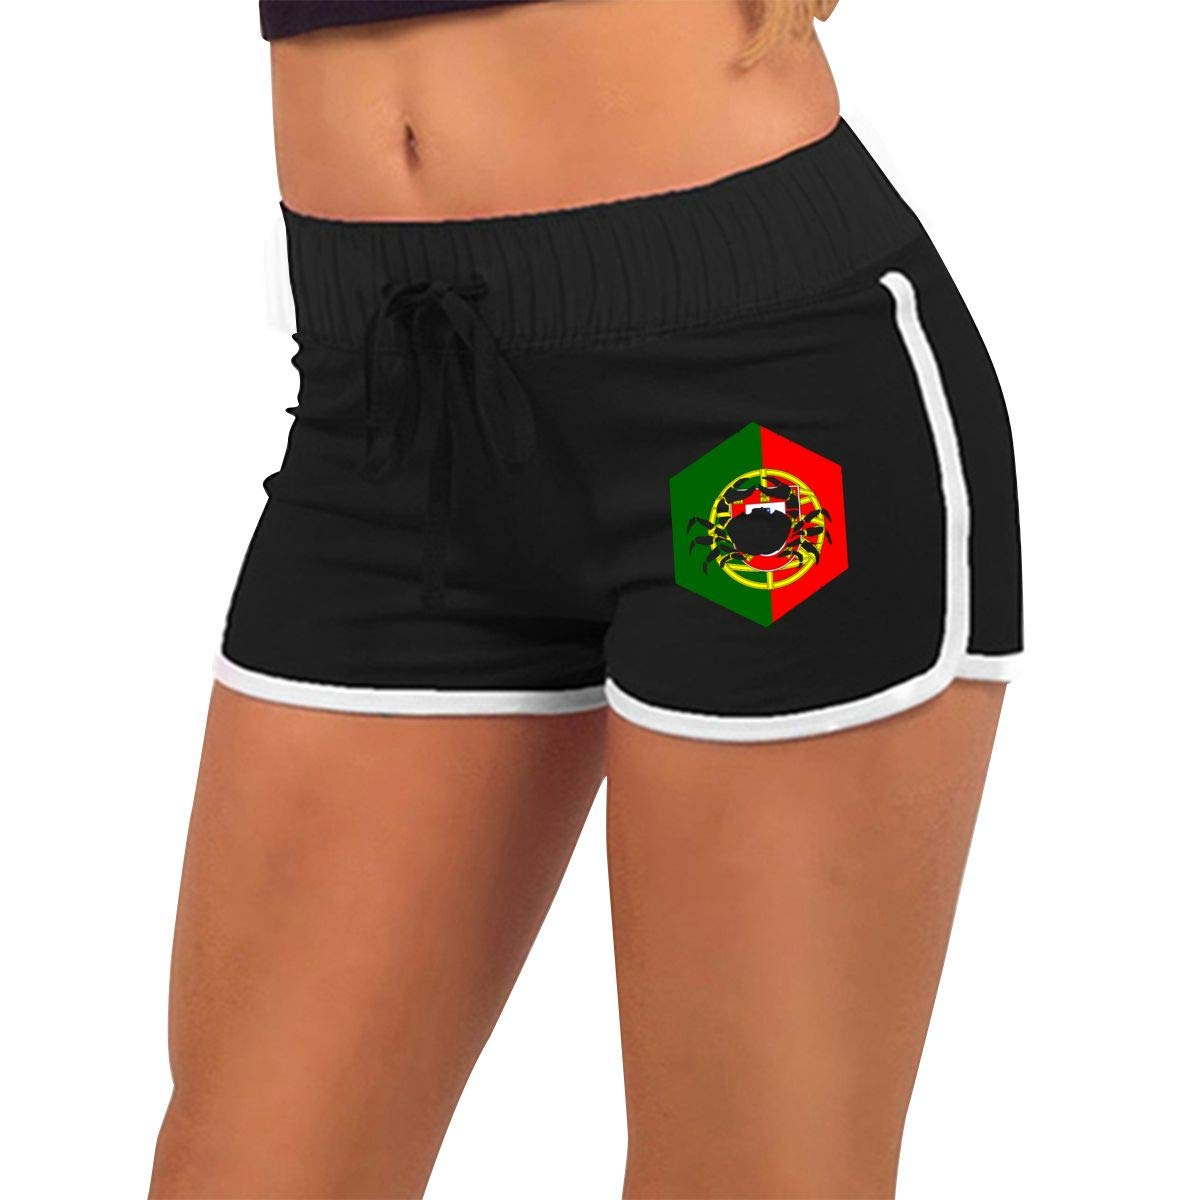 Q22-PI Womens Cancer Portugal Running Active Shorts Pants with Athletic Elastic Waist